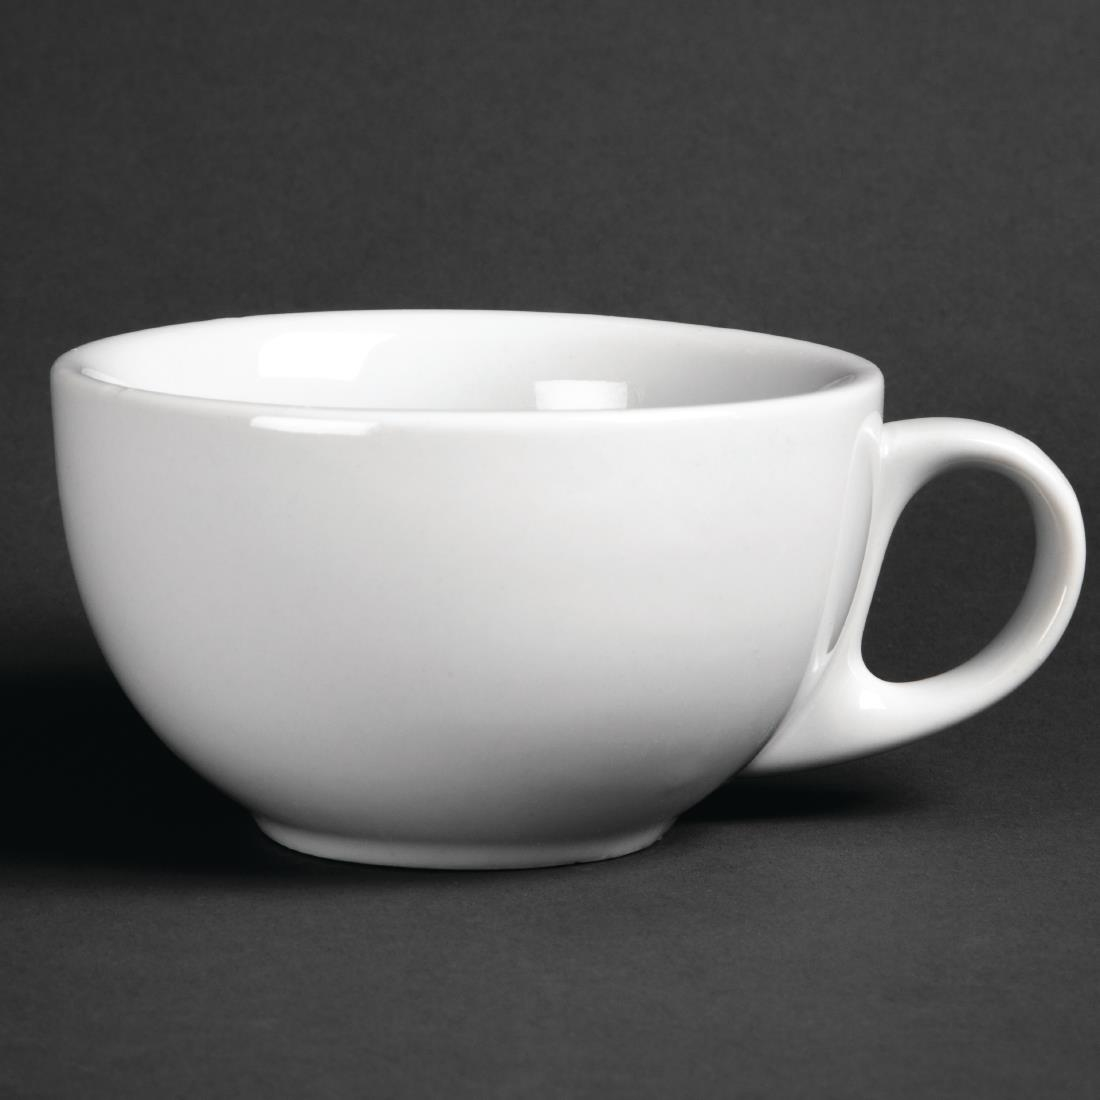 Image of Athena Hotelware Cappuccino Cups 10oz 285ml (Pack of 12) Pack of 12